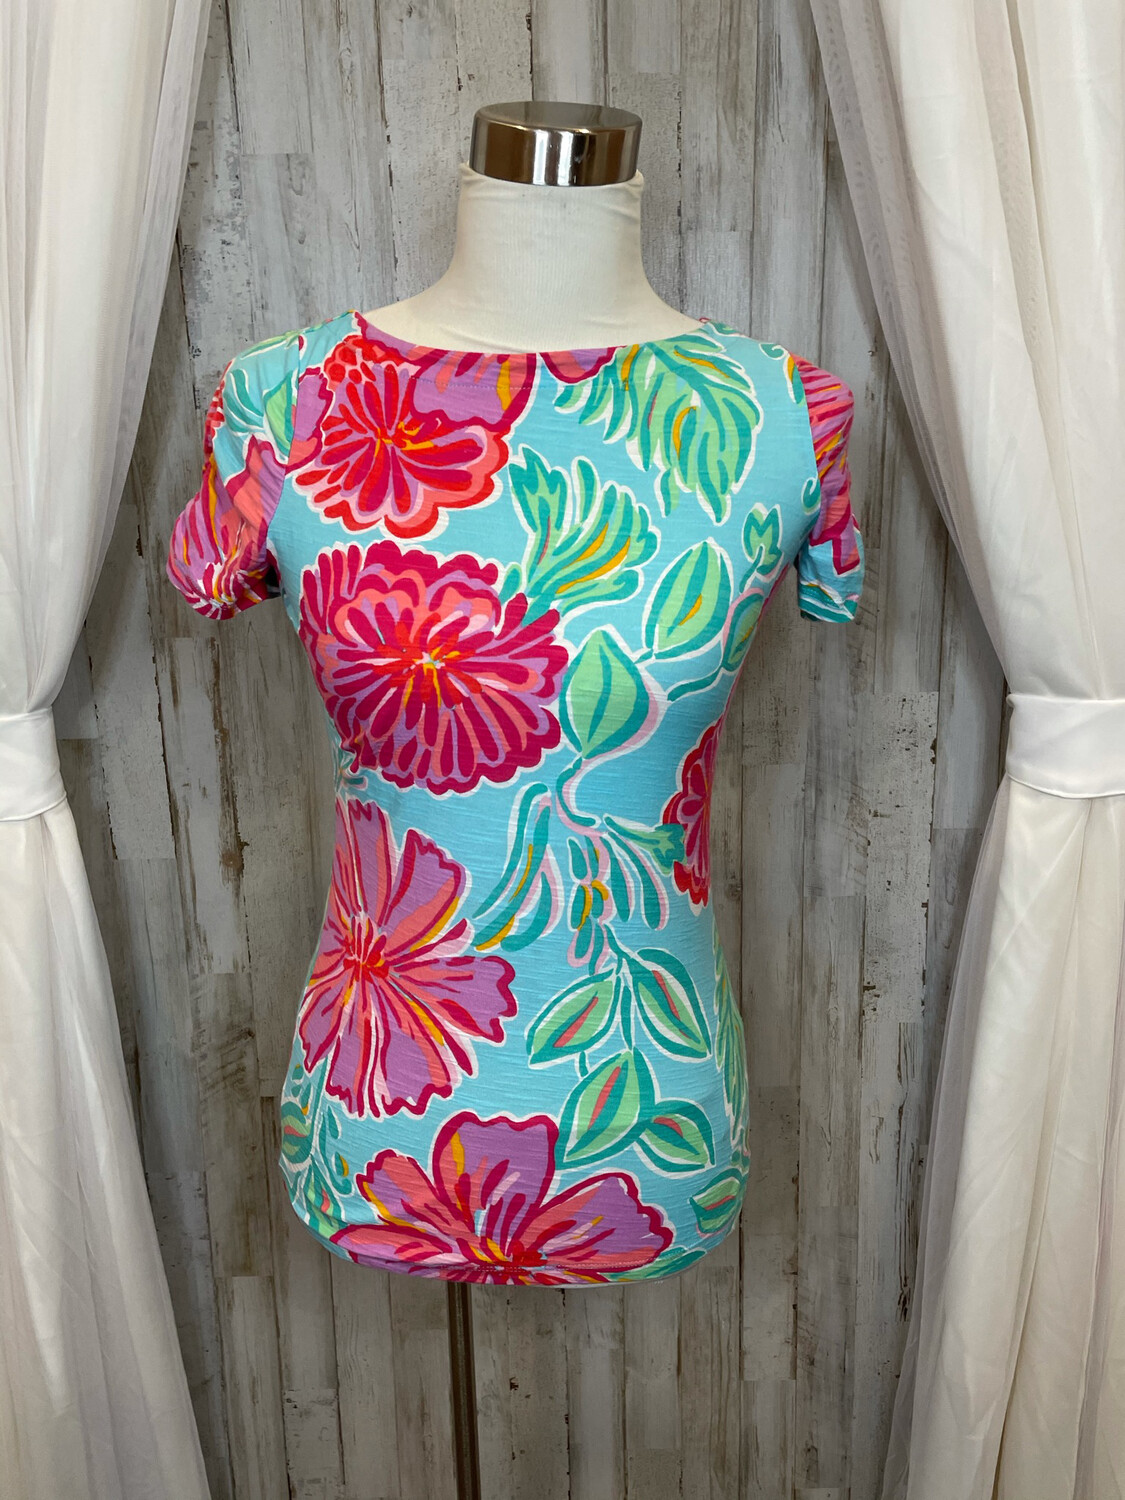 Lilly Pulitzer Blue Floral Top - XS